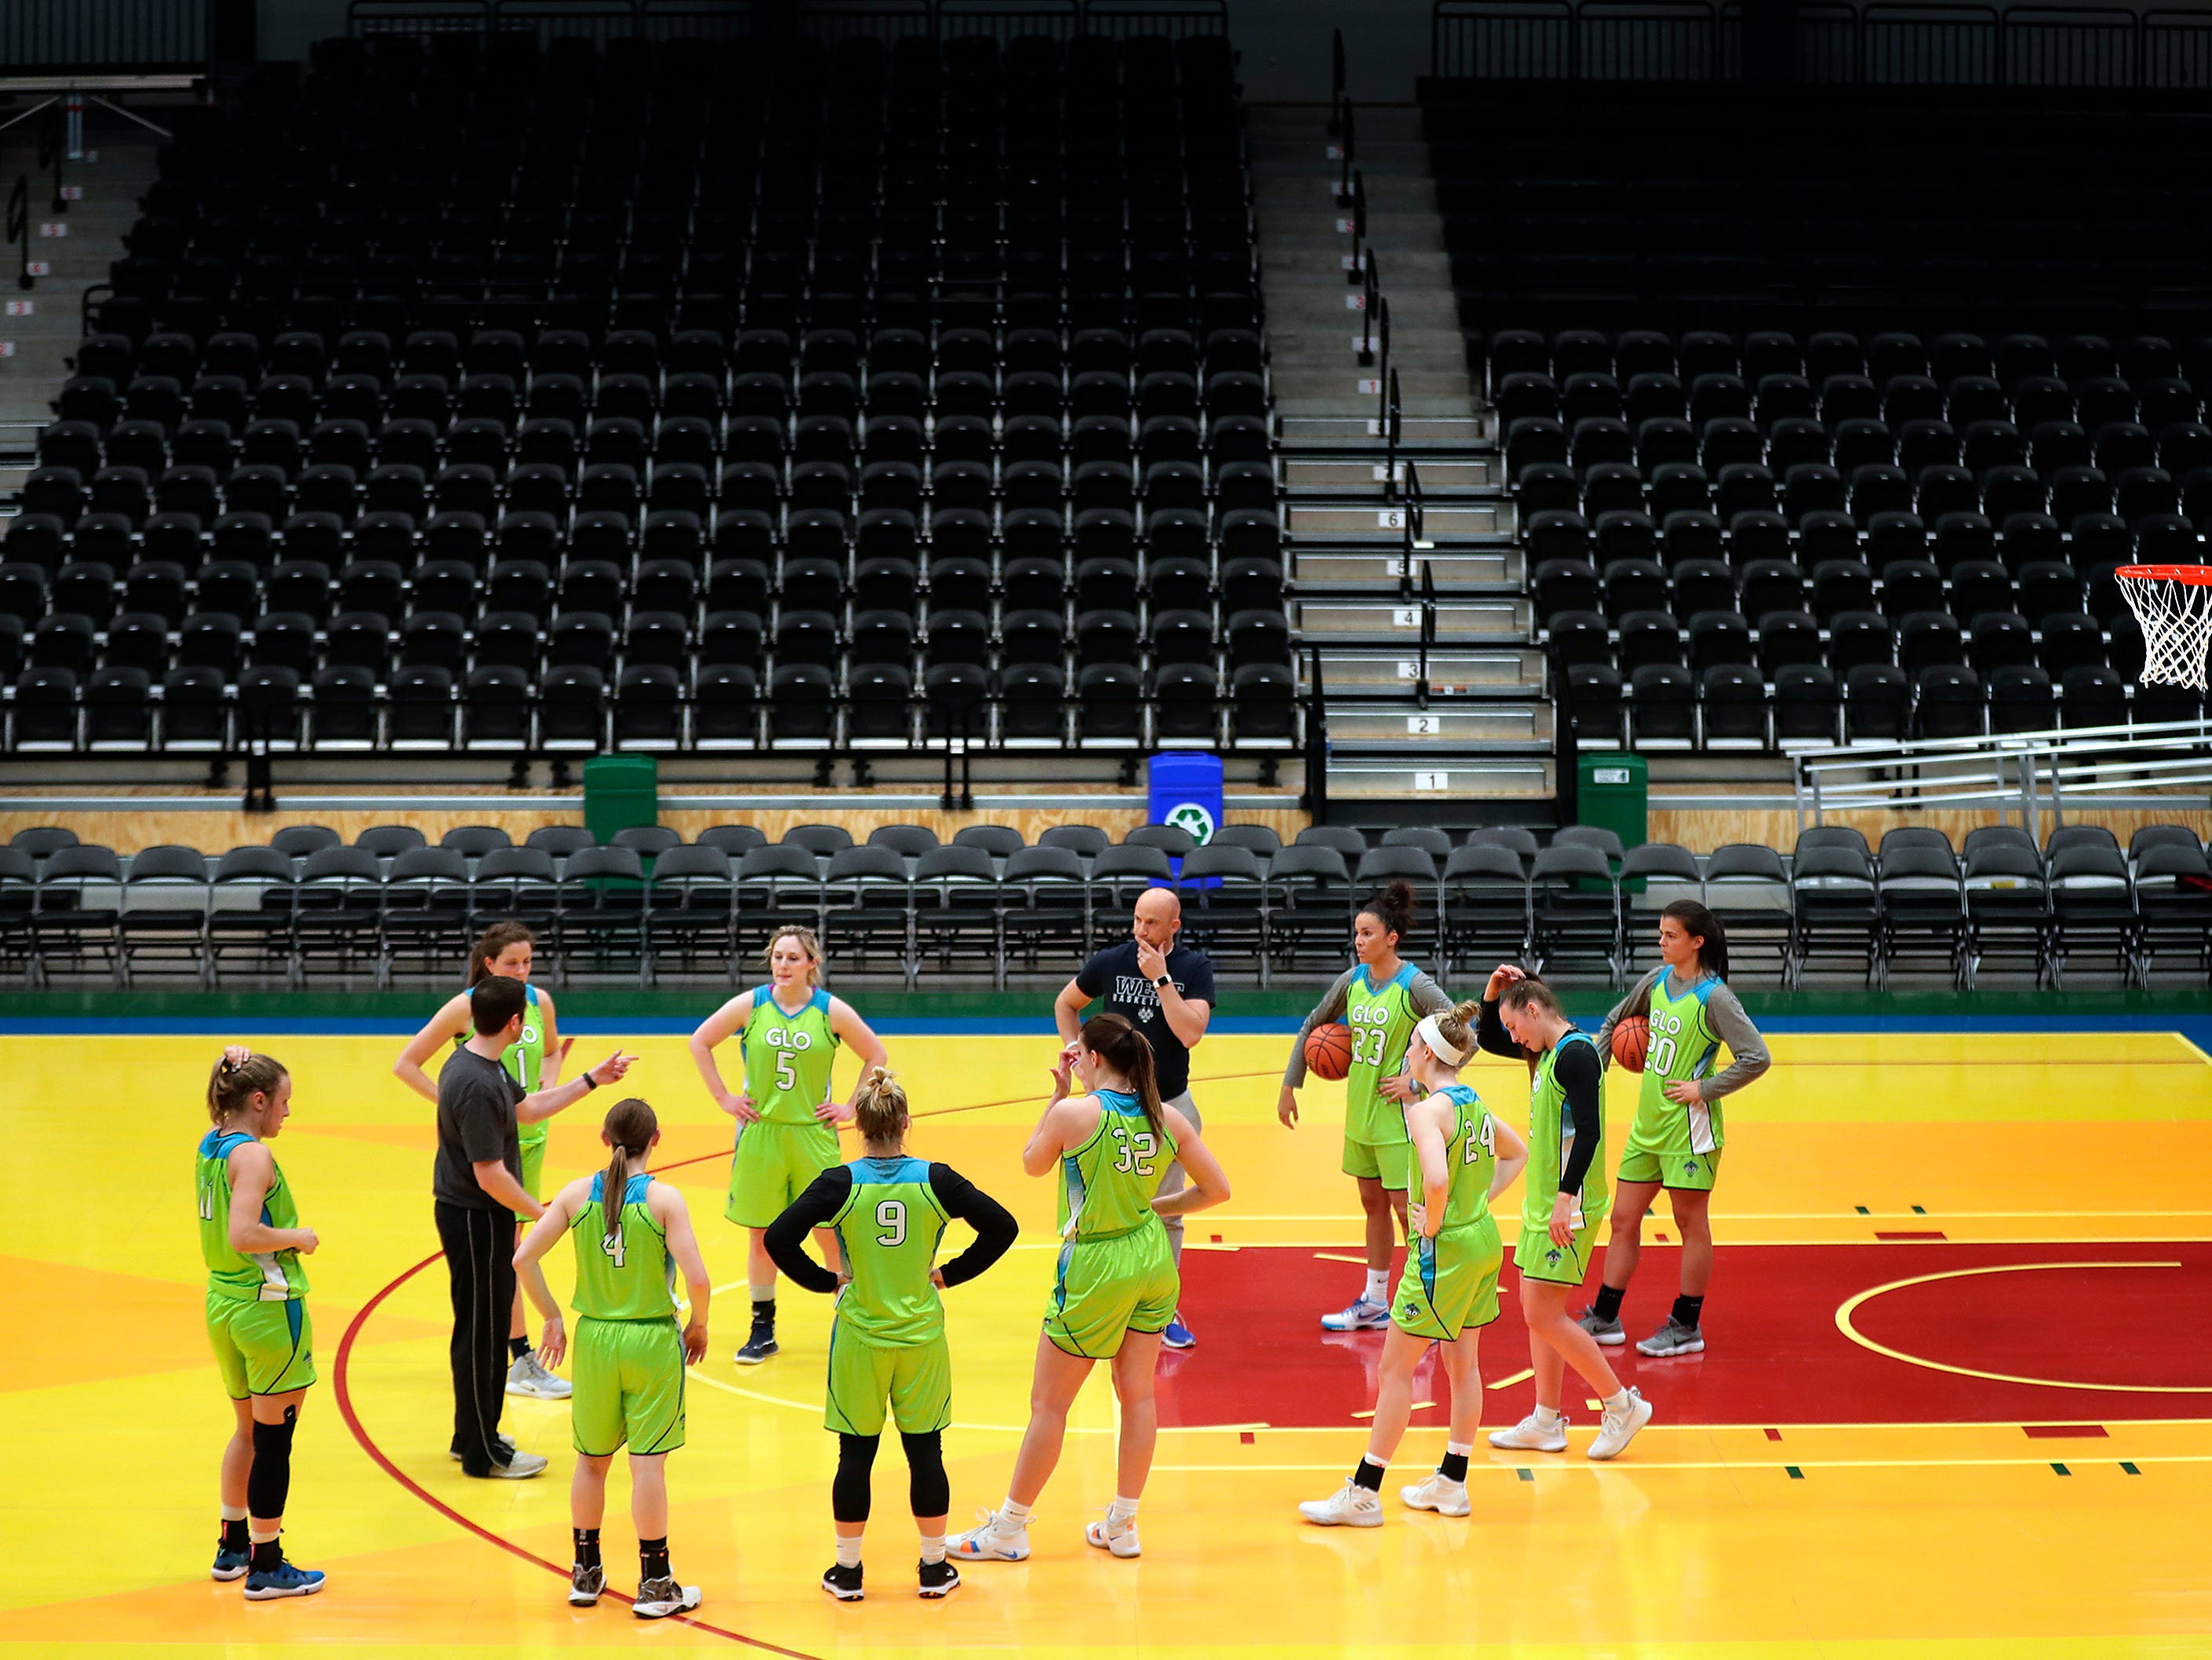 Wisconsin Glo players practice at Menominee Nation Arena on Tuesday, May 7, 2019, in Oshkosh, Wis. The Wisconsin Glo is a professional women's basketball team, they will play their first game on Friday, May 10, 2019 in Oshkosh. 